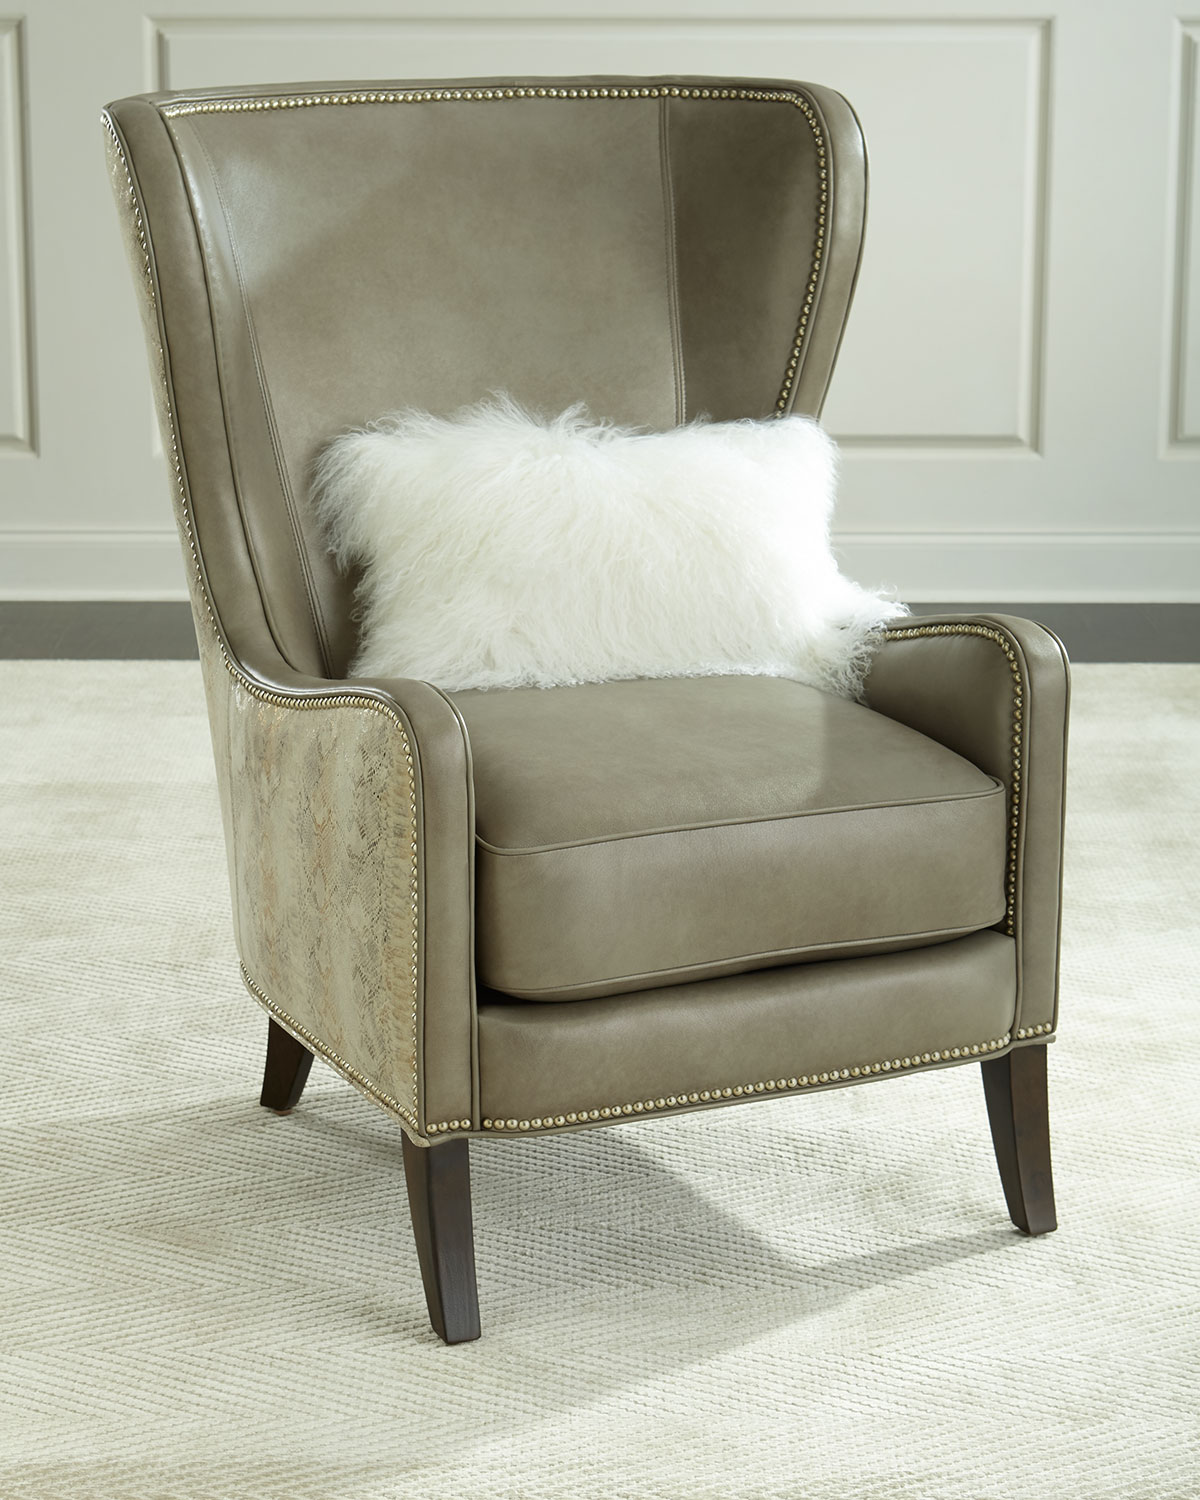 Pelham Leather Wingback Chair Gray Metallic